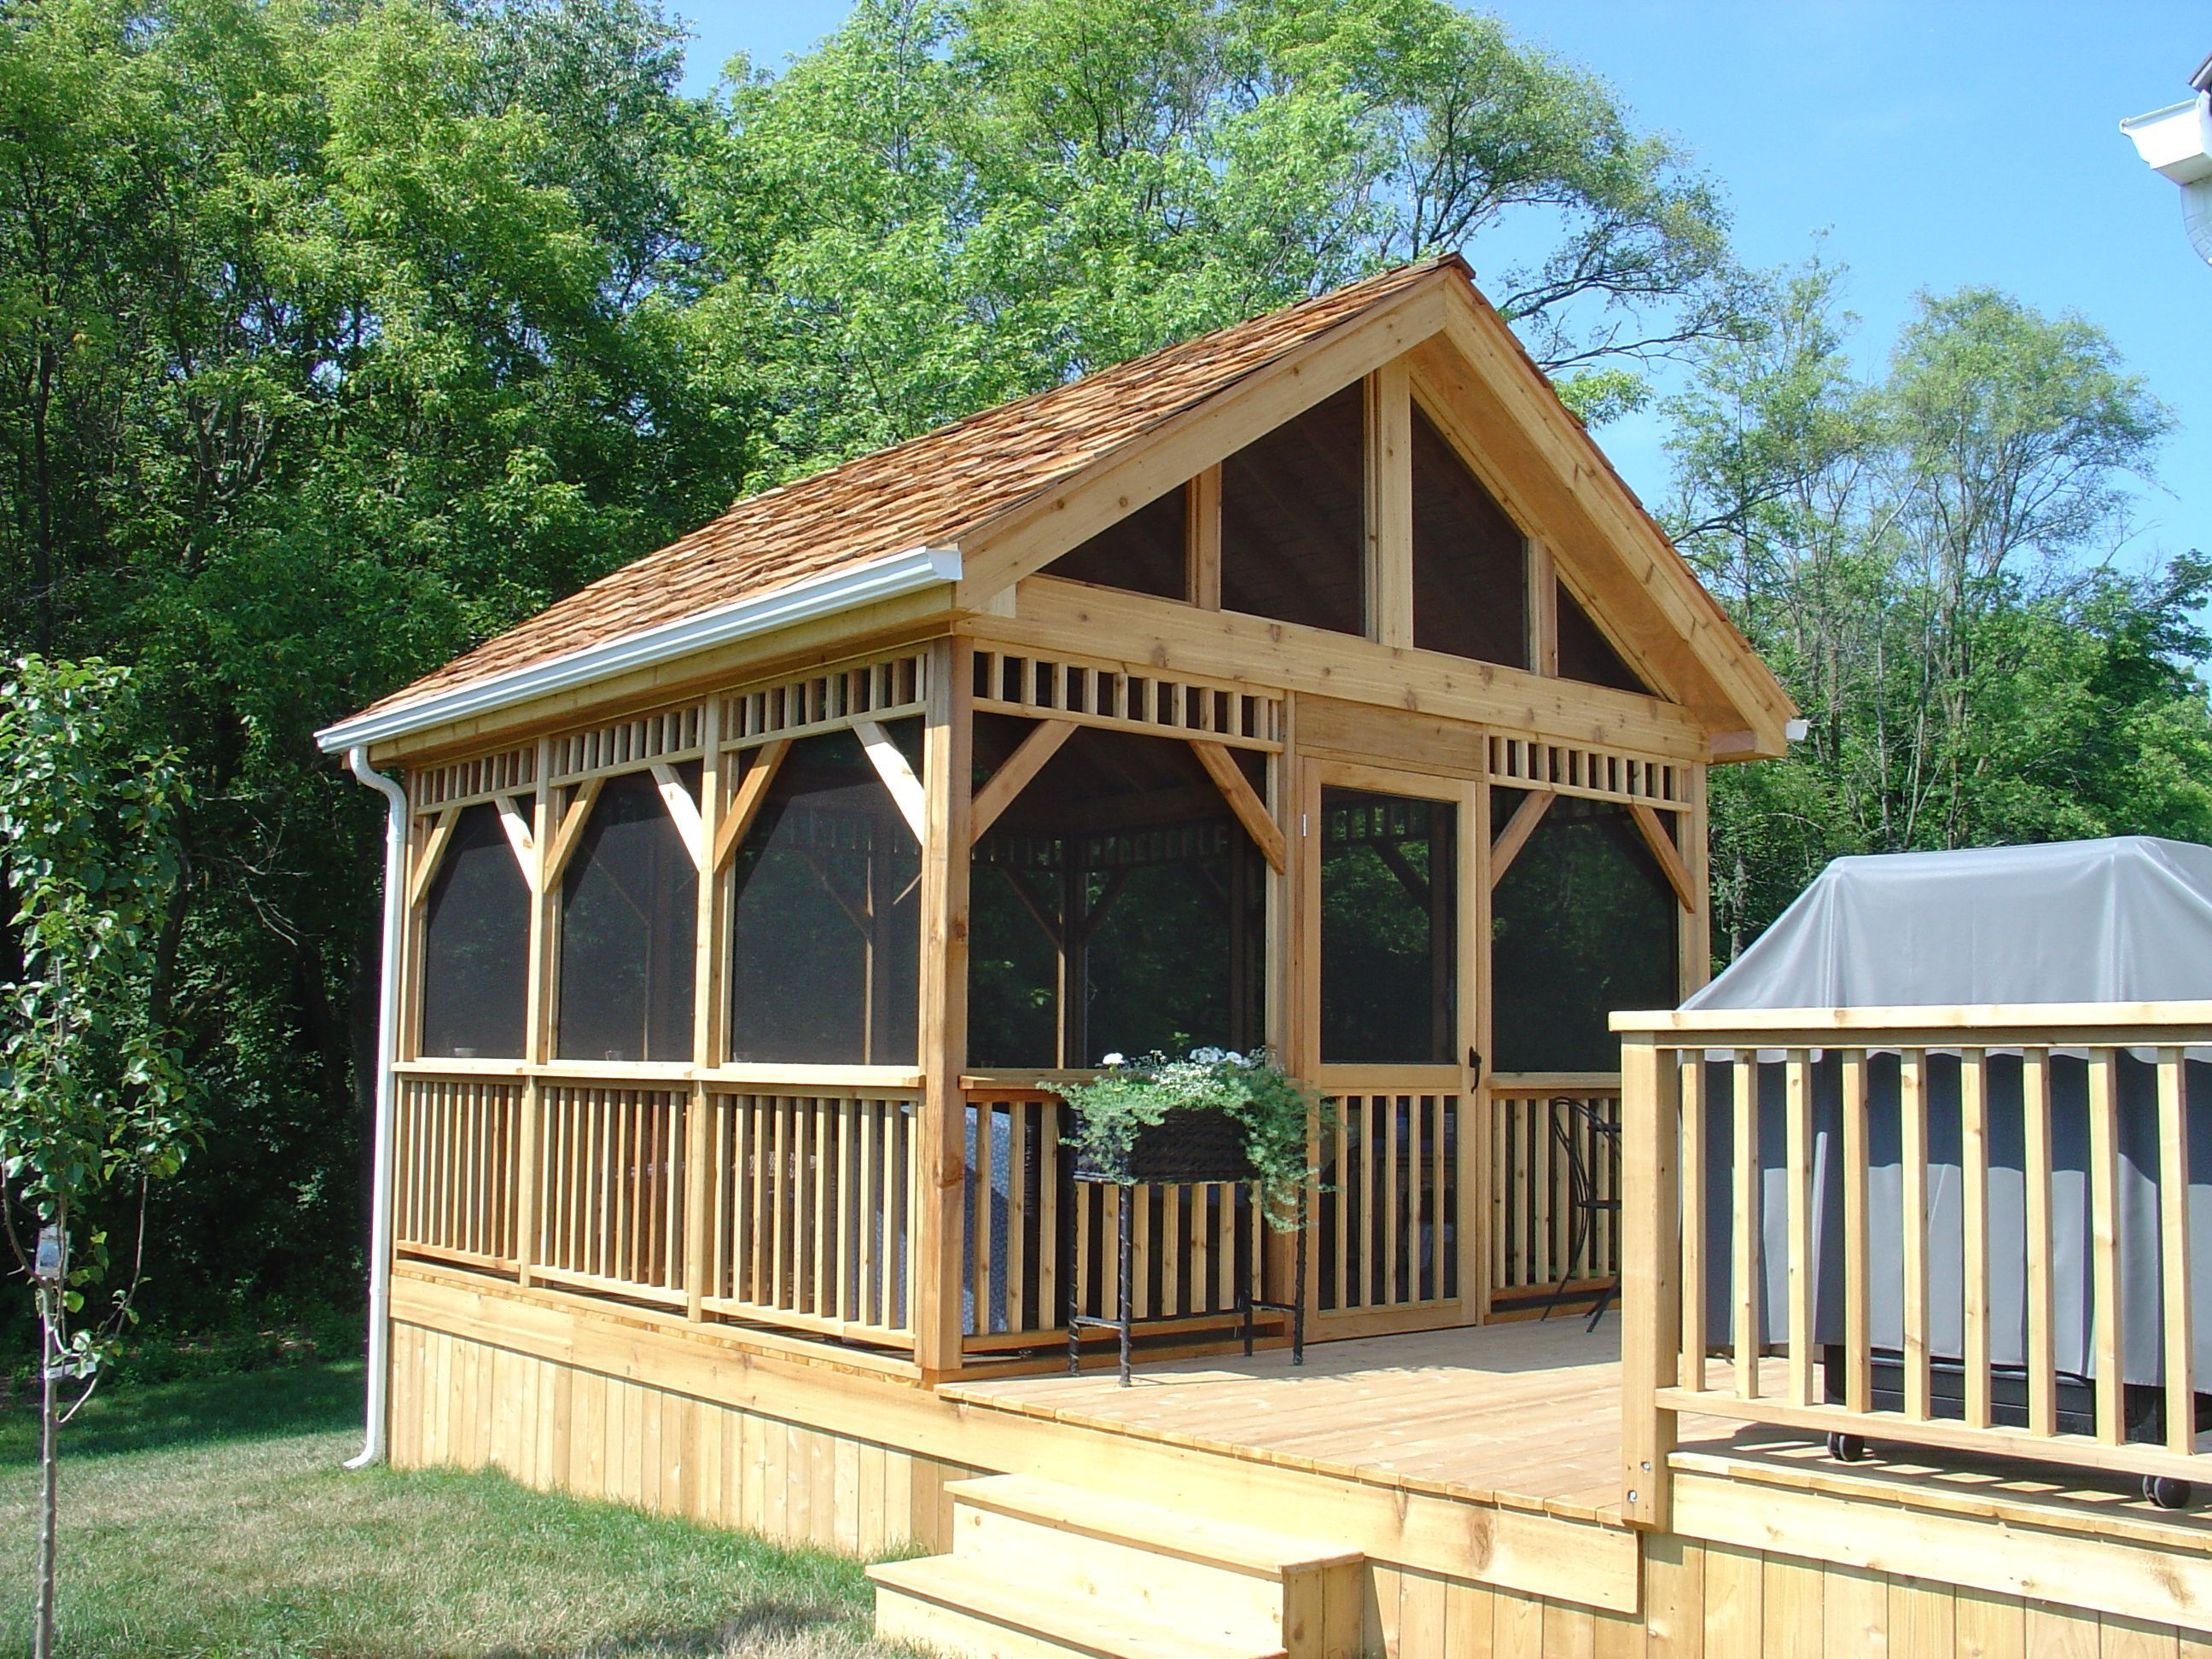 How To Build A Freestanding Patio Cover With Best 10 Samples Ideas Homivi Gazebo Plans Screened Gazebo Patio Gazebo Backyard screen house ideas